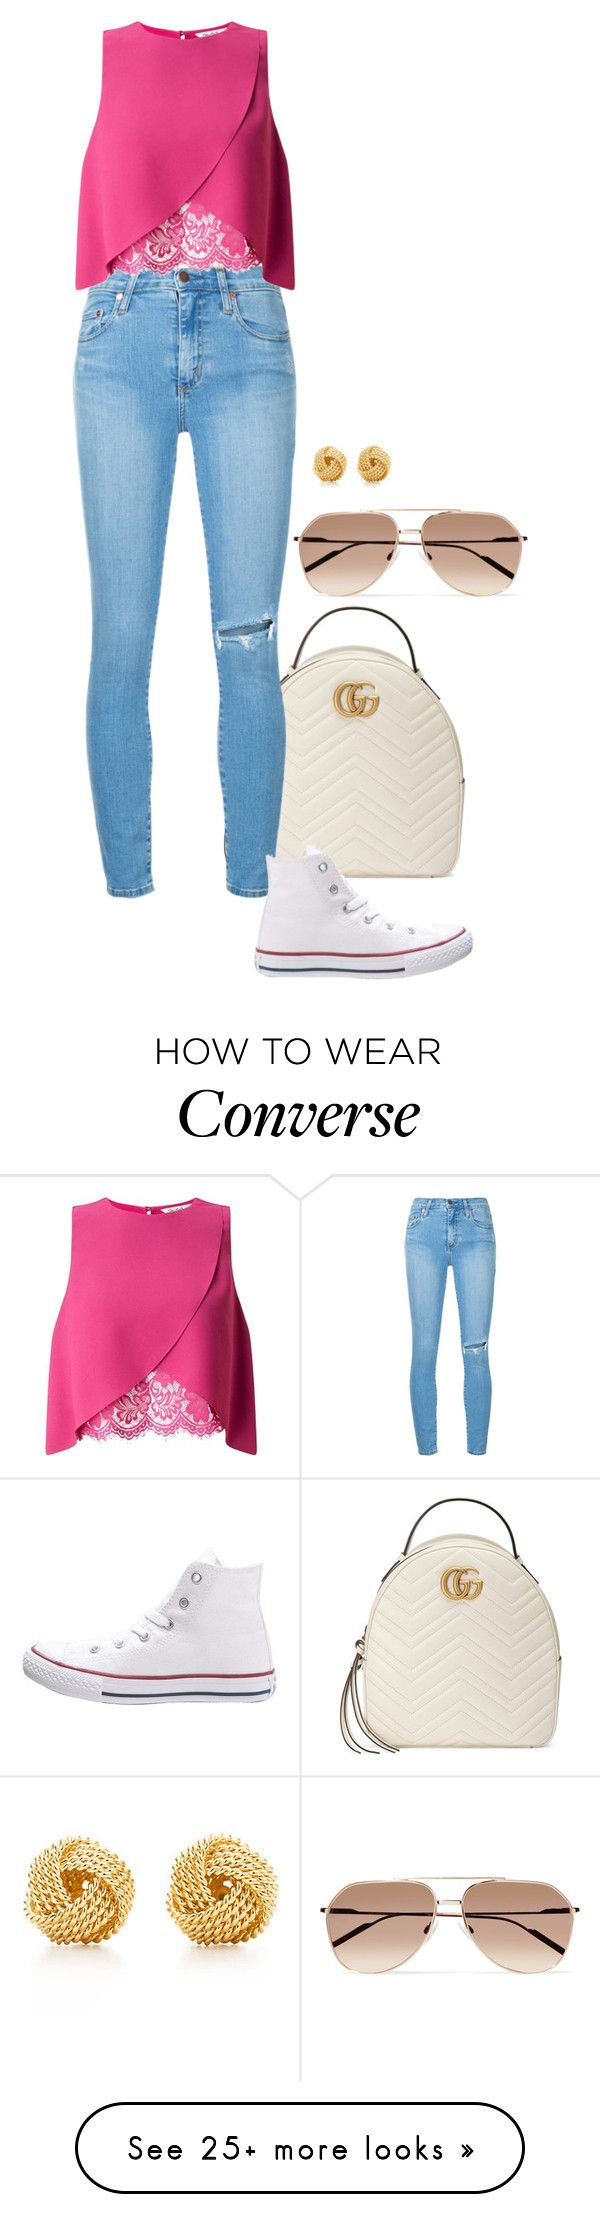 """Hydrated."" by foreverforbiddenromancefashion on Polyvore featuring Gucci, Nobody Denim, Miss Selfridge, Converse, Dolce&Gabbana and Tiffany & Co."